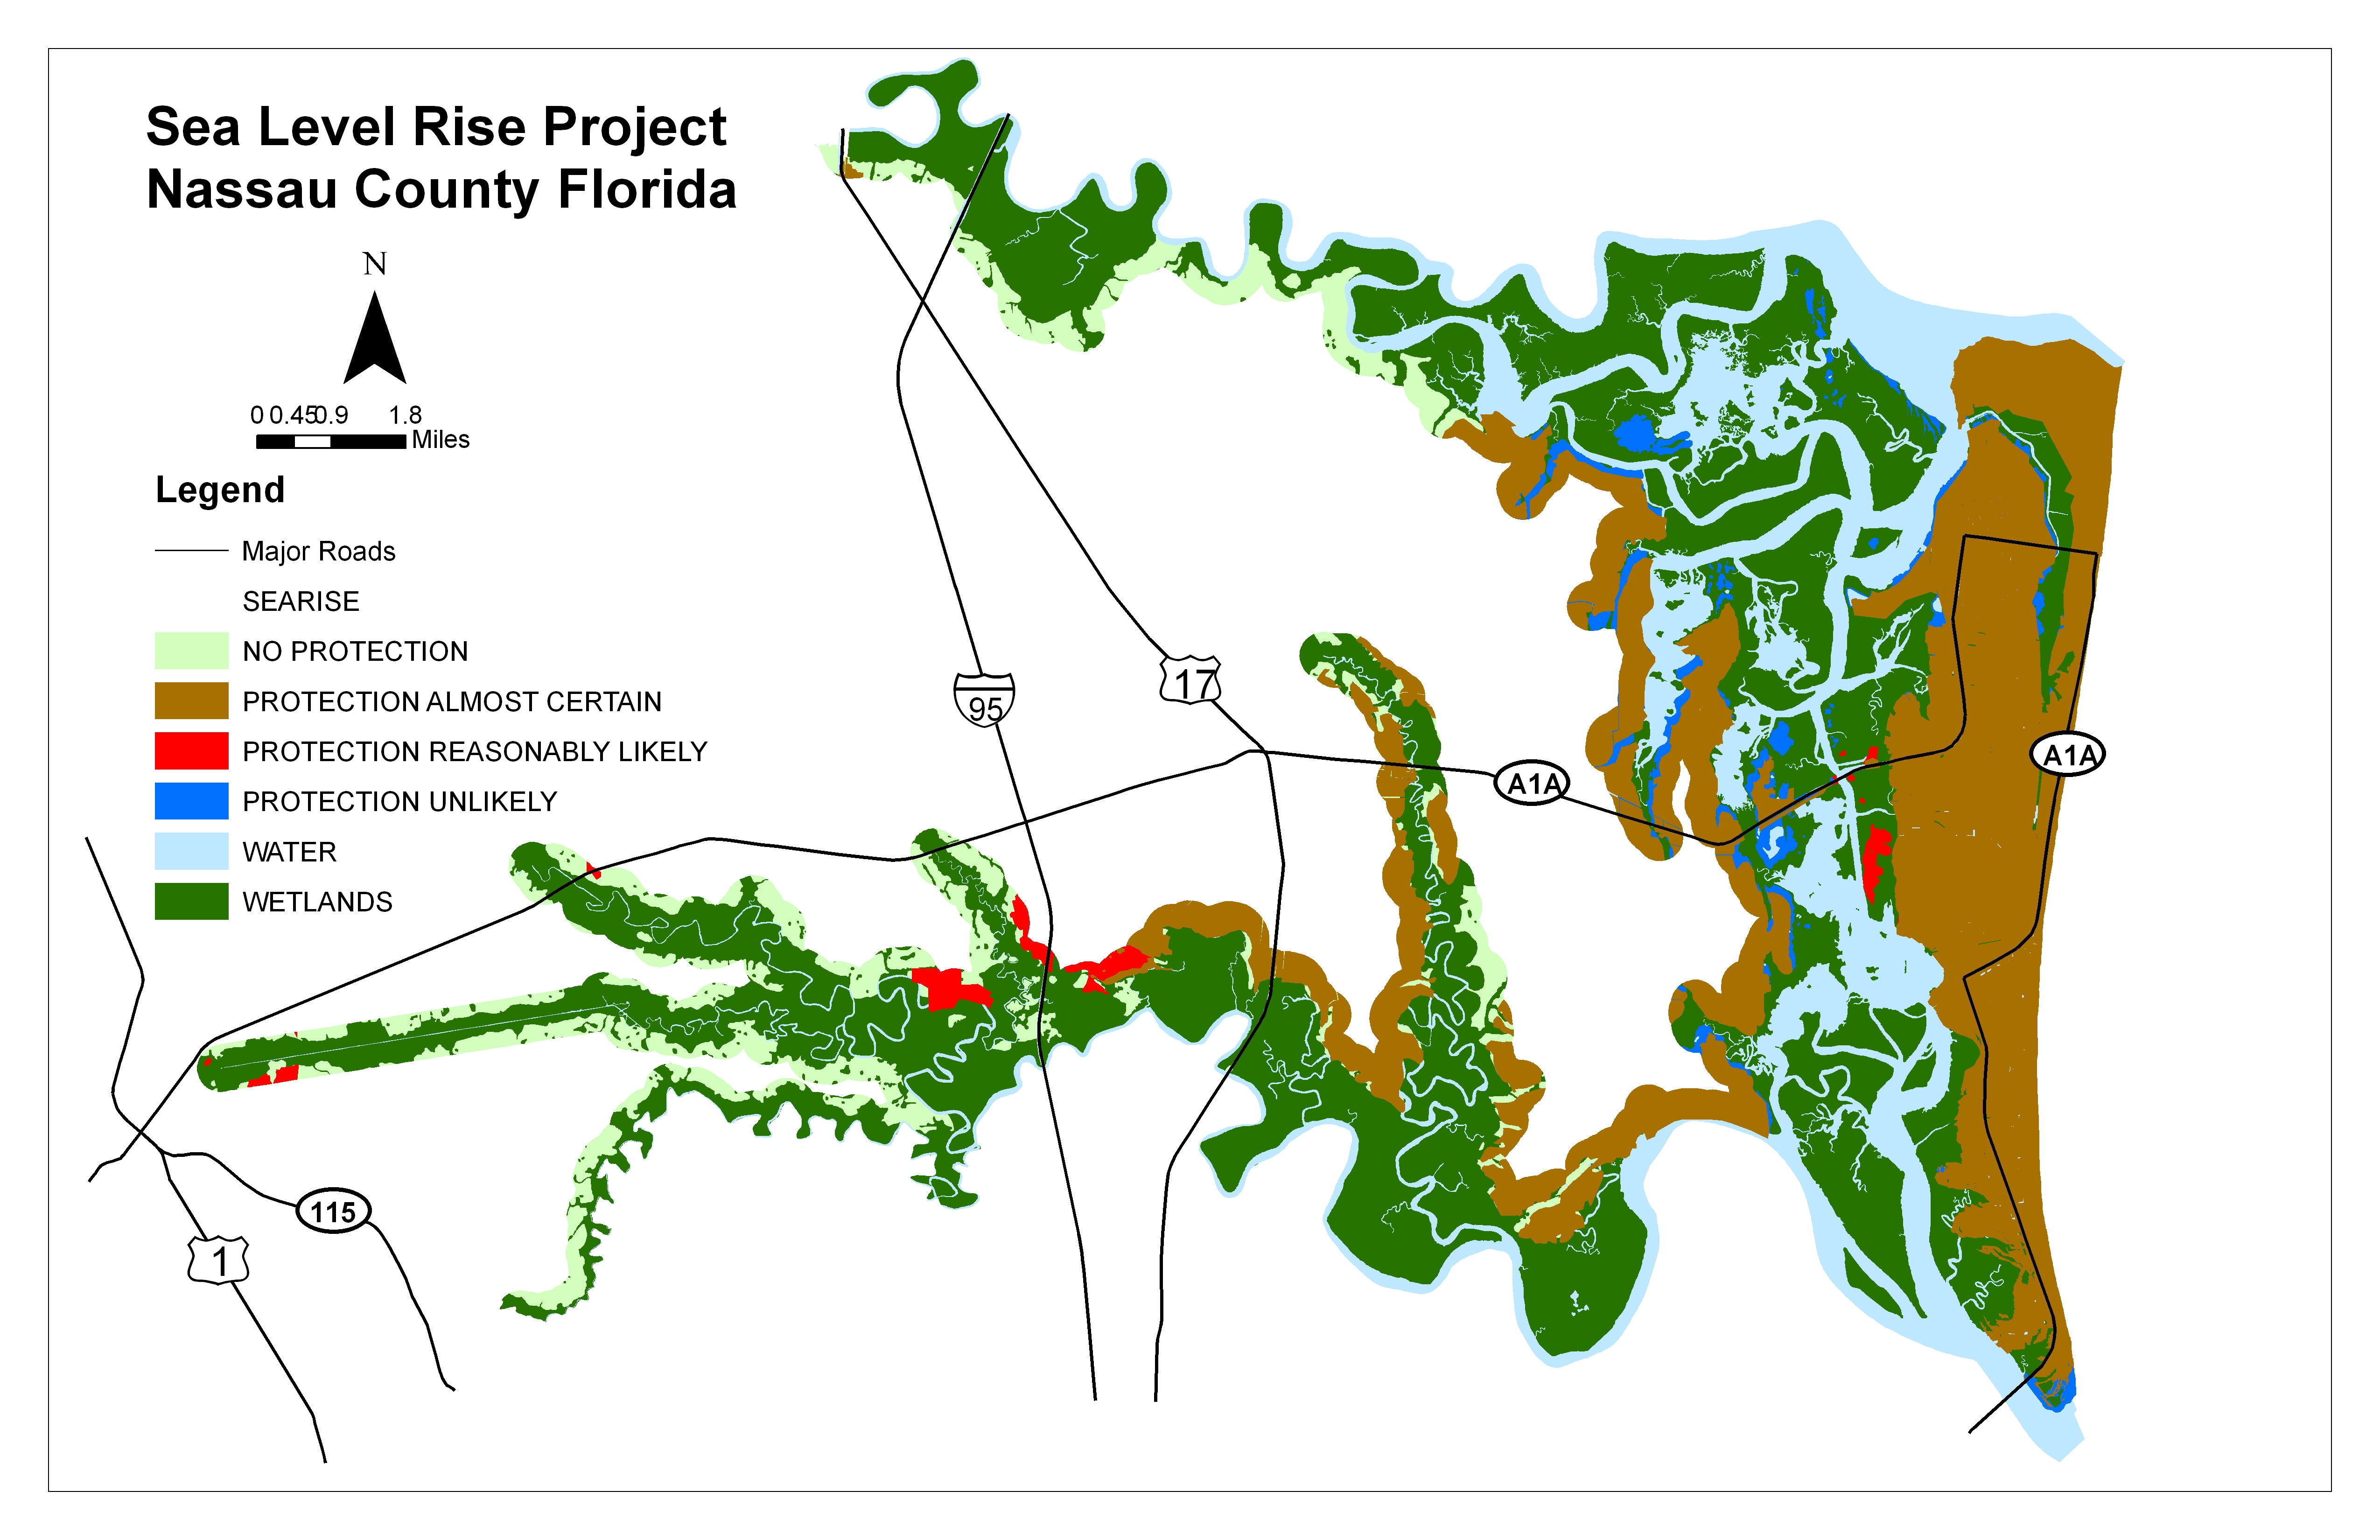 Sea Level Rise Planning Maps Likelihood Of Shore Protection In Florida